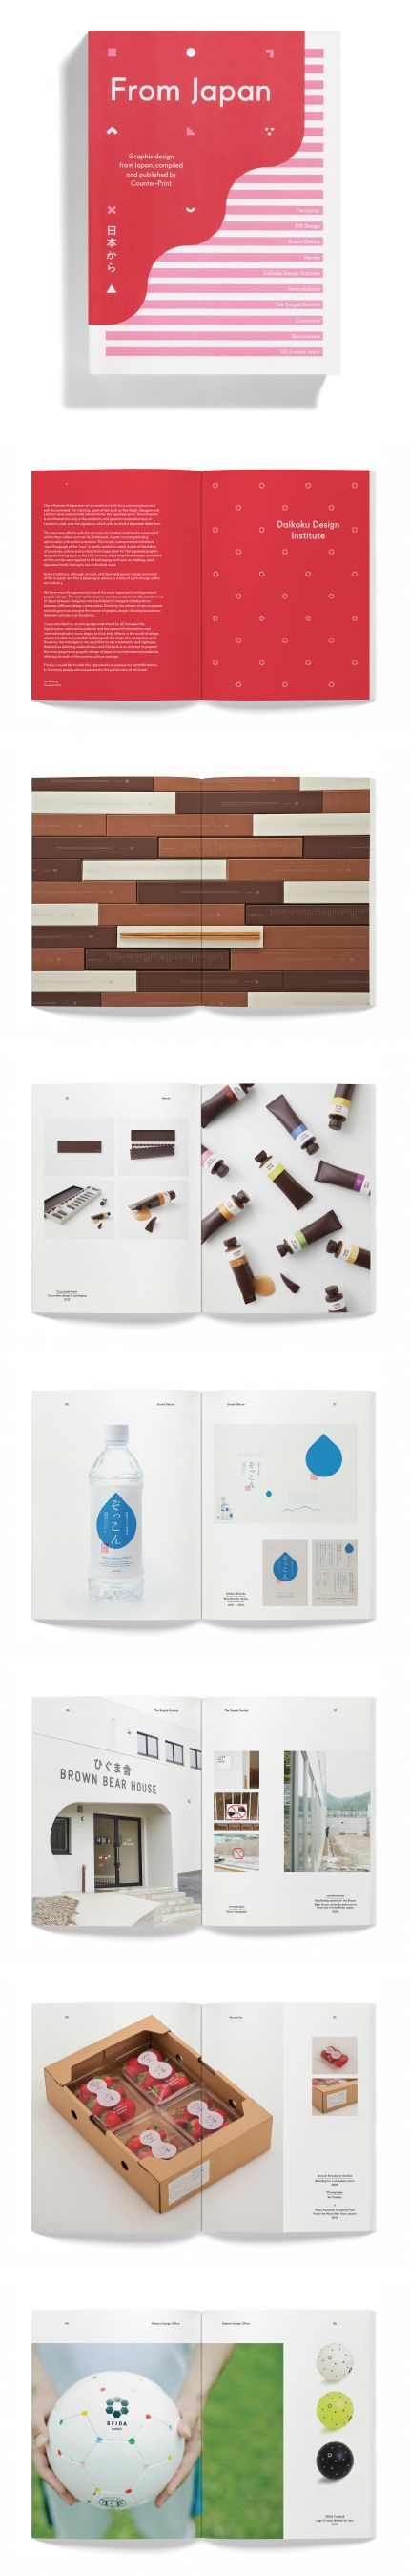 From Japan – New Book Out Now - Counter Print